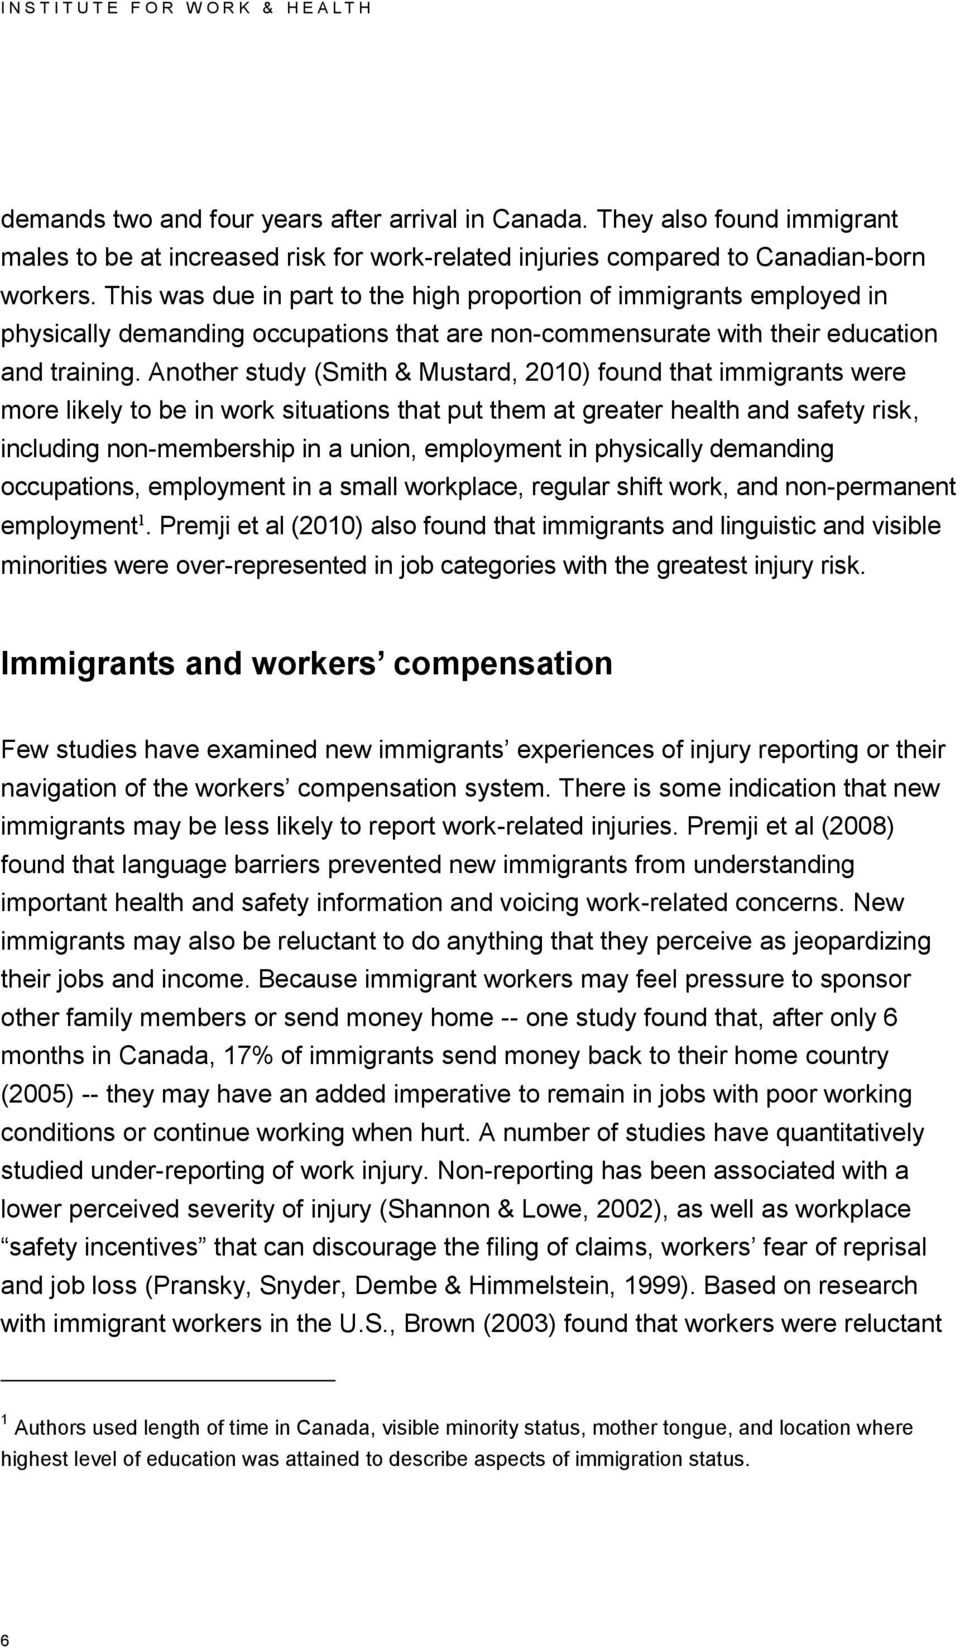 This was due in part to the high proportion of immigrants employed in physically demanding occupations that are non-commensurate with their education and training.